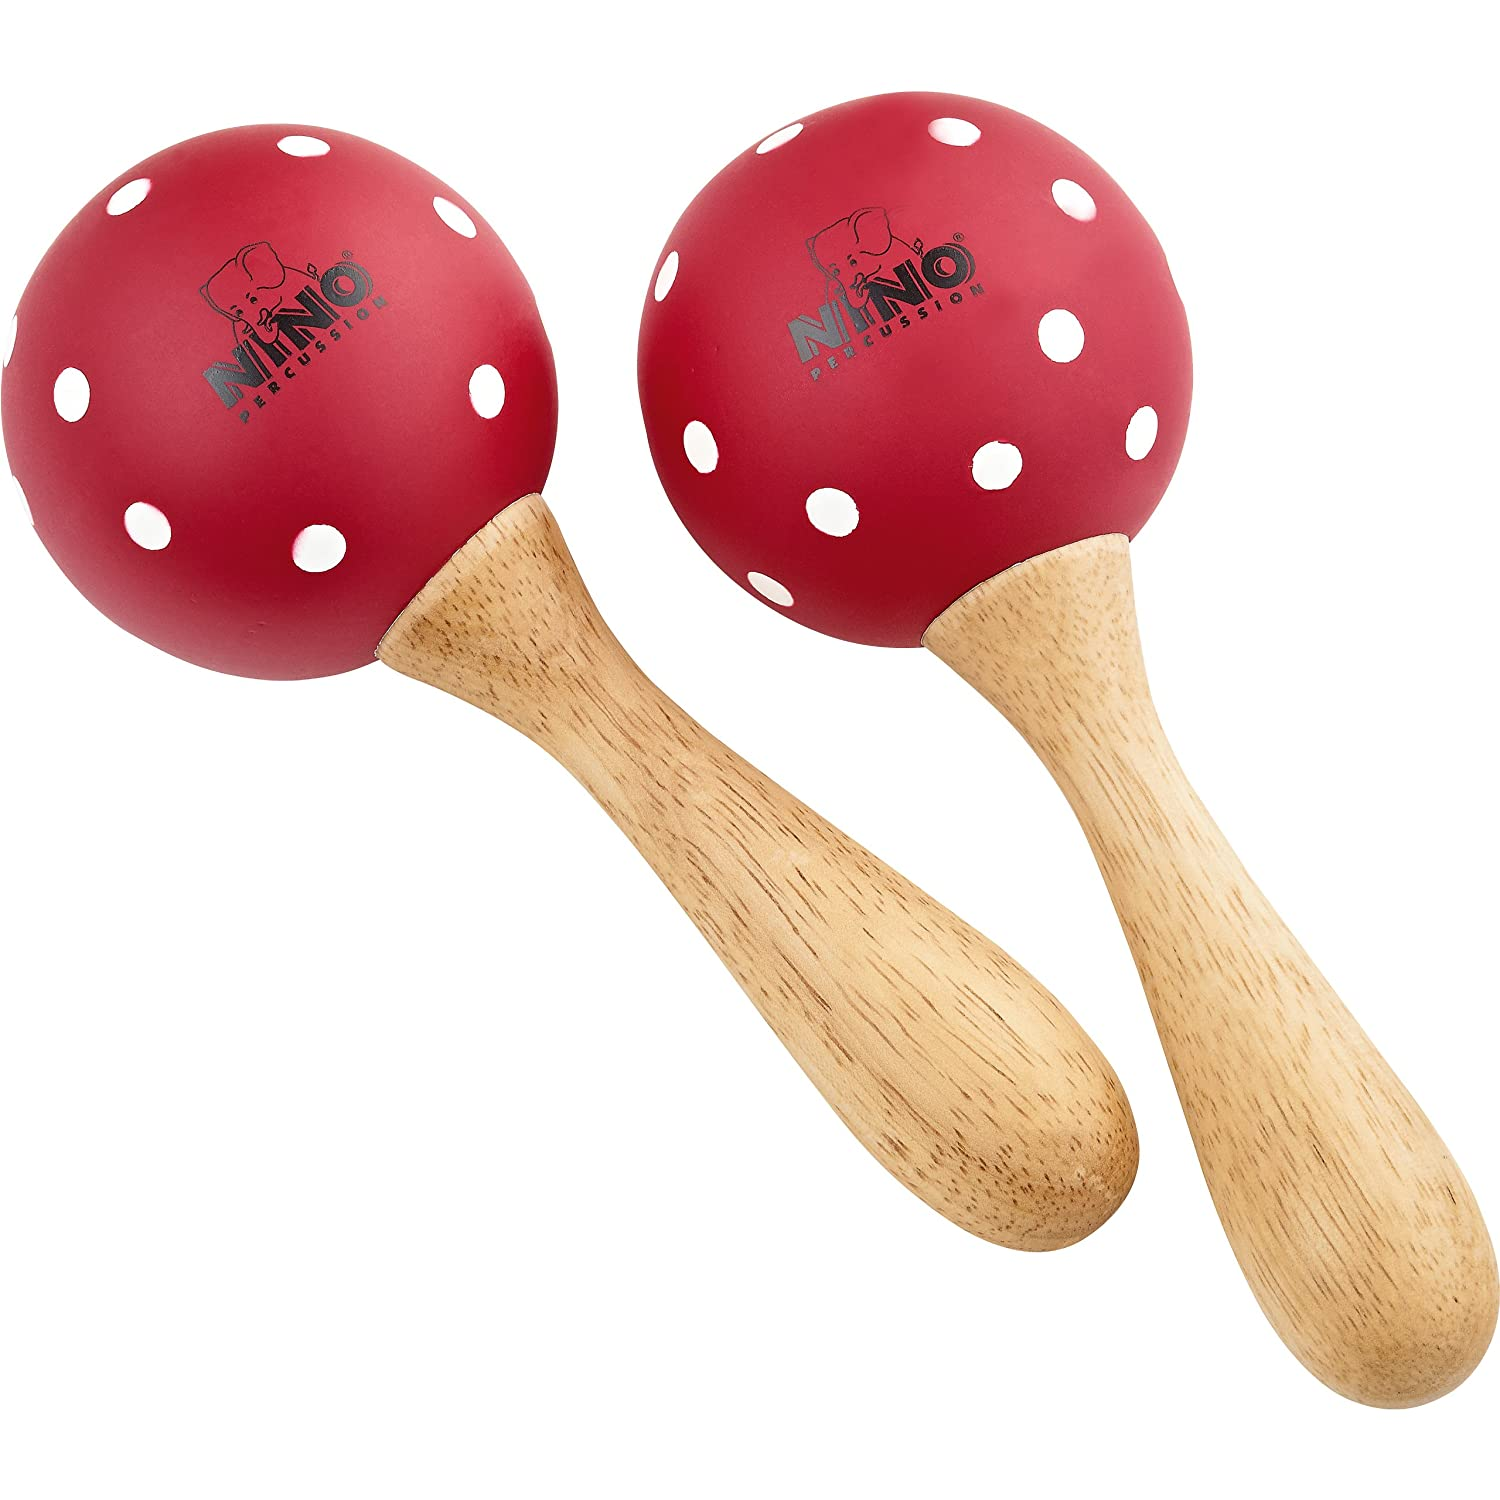 Nino Percussion NINO8PD-R Medium Wood Maracas-Red with White Polka Dots Meinl